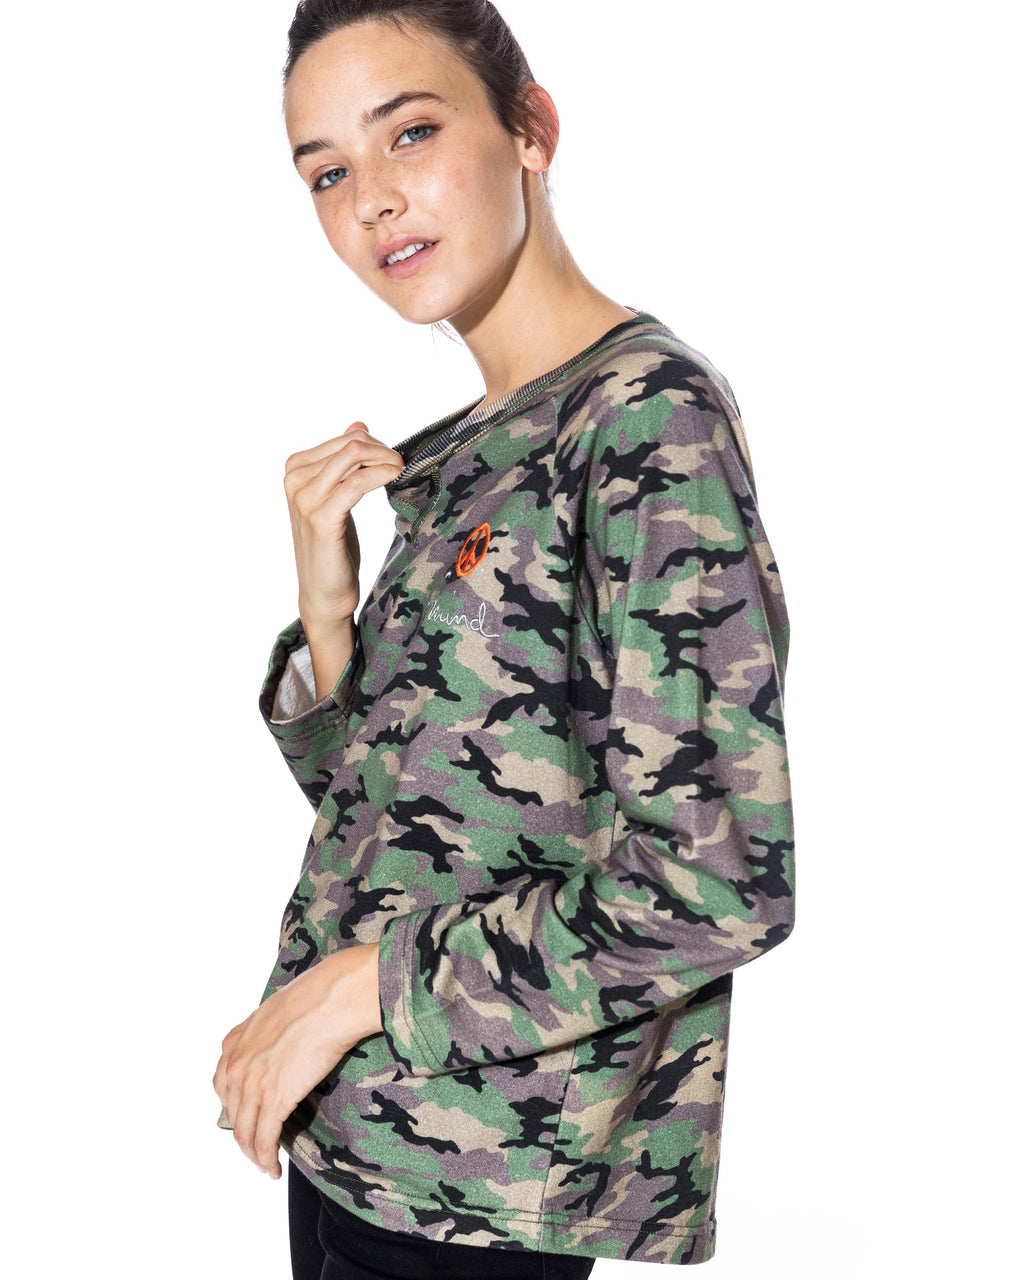 "CT18599 - CAMO CREW NECK SWEATSHIRT - tops - knitwear - Our new long sleeve camo sweatshirt is designed in a blush pink and classic camo colorway. Featuring a slightly raw hem and ""peace of mind"" embroidery. Add 1 line break Stylist tip: Wear with your favorite jeans and white sneakers."